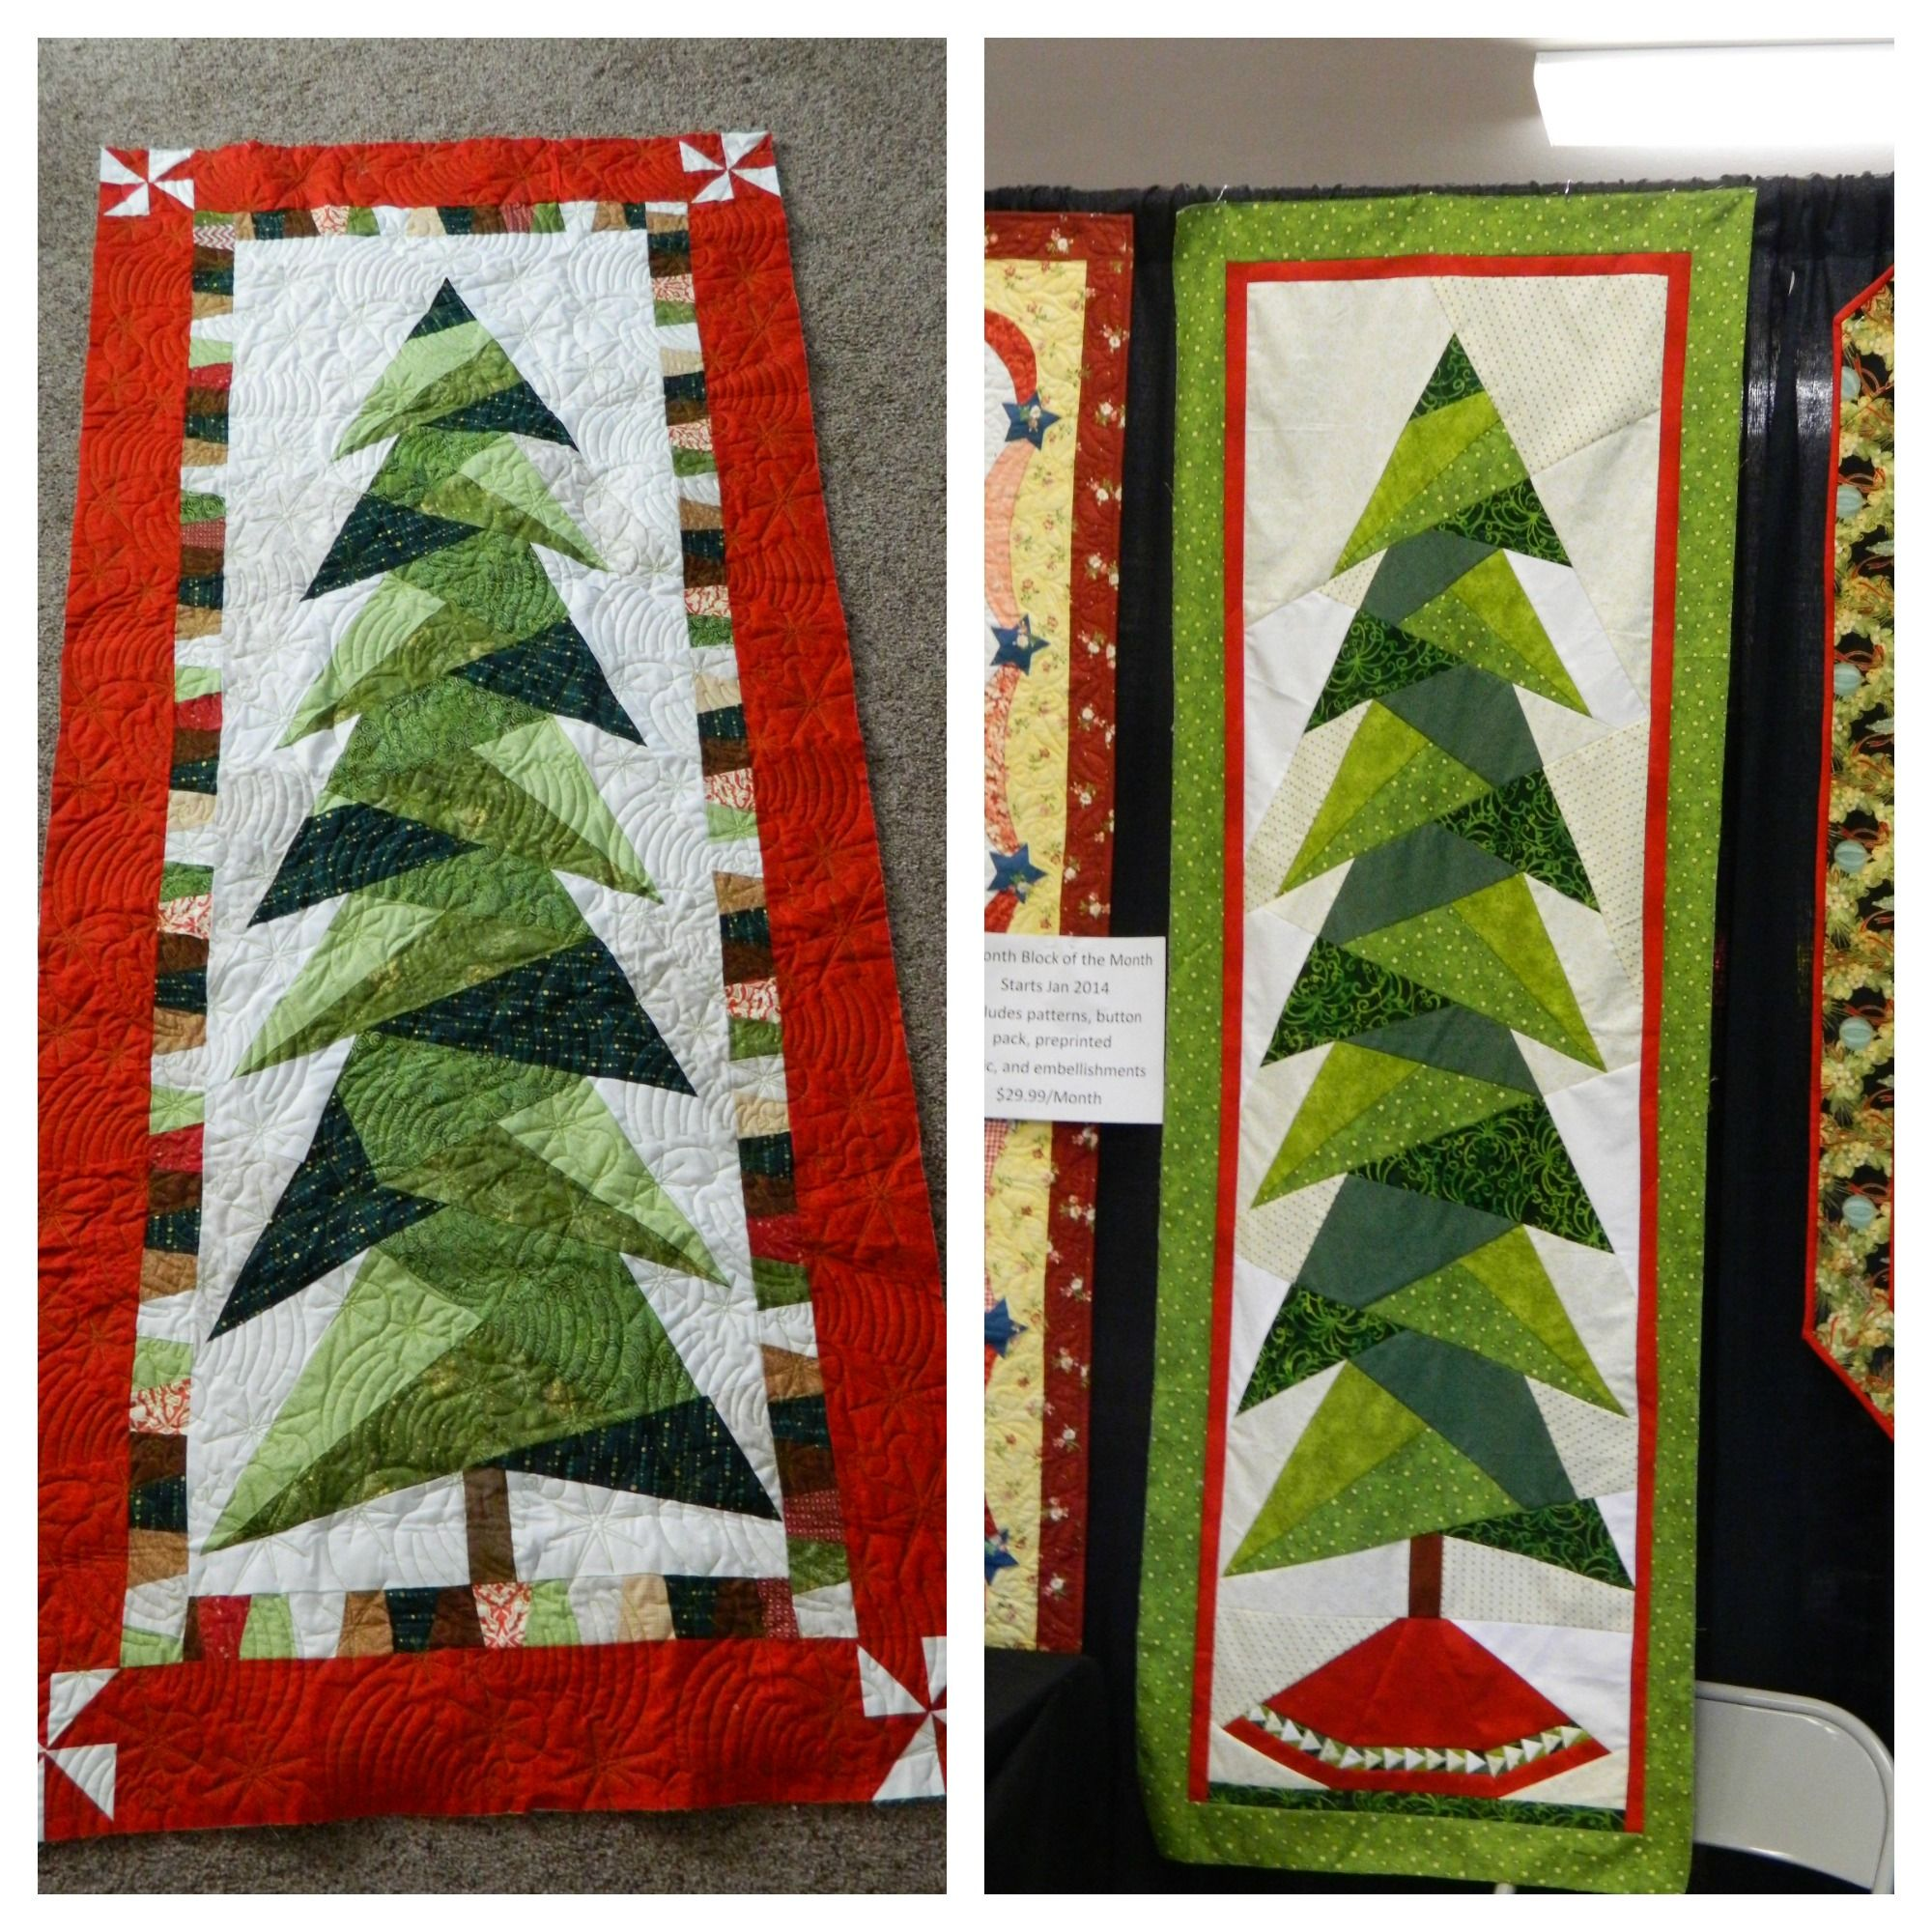 Pinterest Christmas Quilted Wall Hangings Tall Trim The Tree Quilt Quilt Patterns I Have Christmas